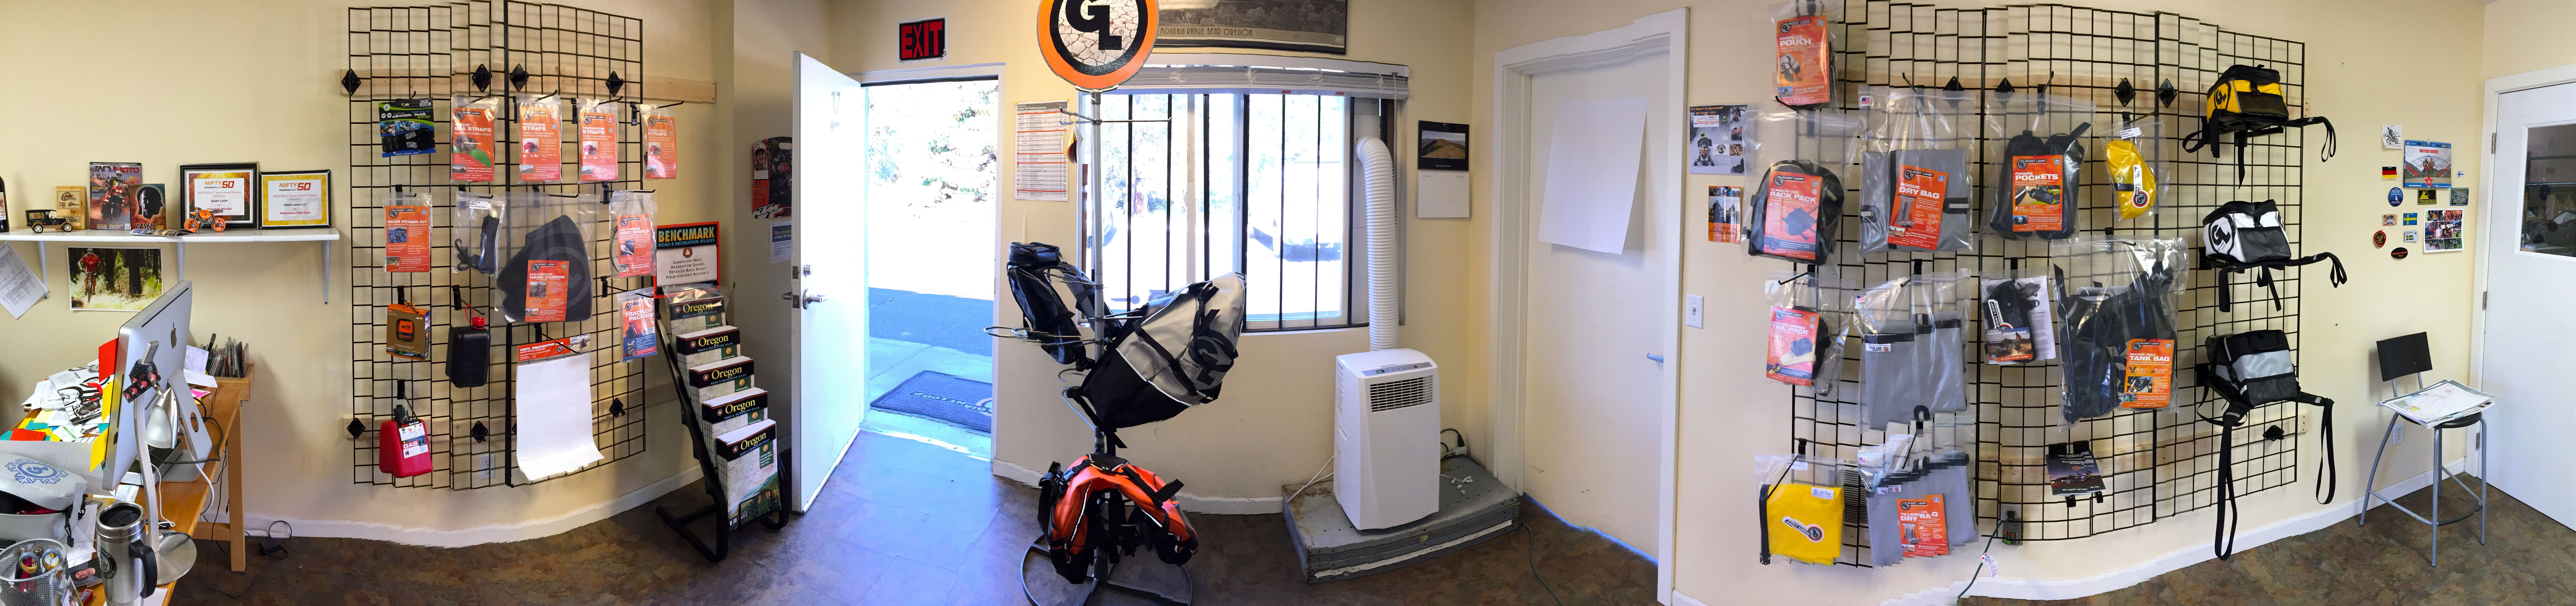 Giant Loop showroom panorama